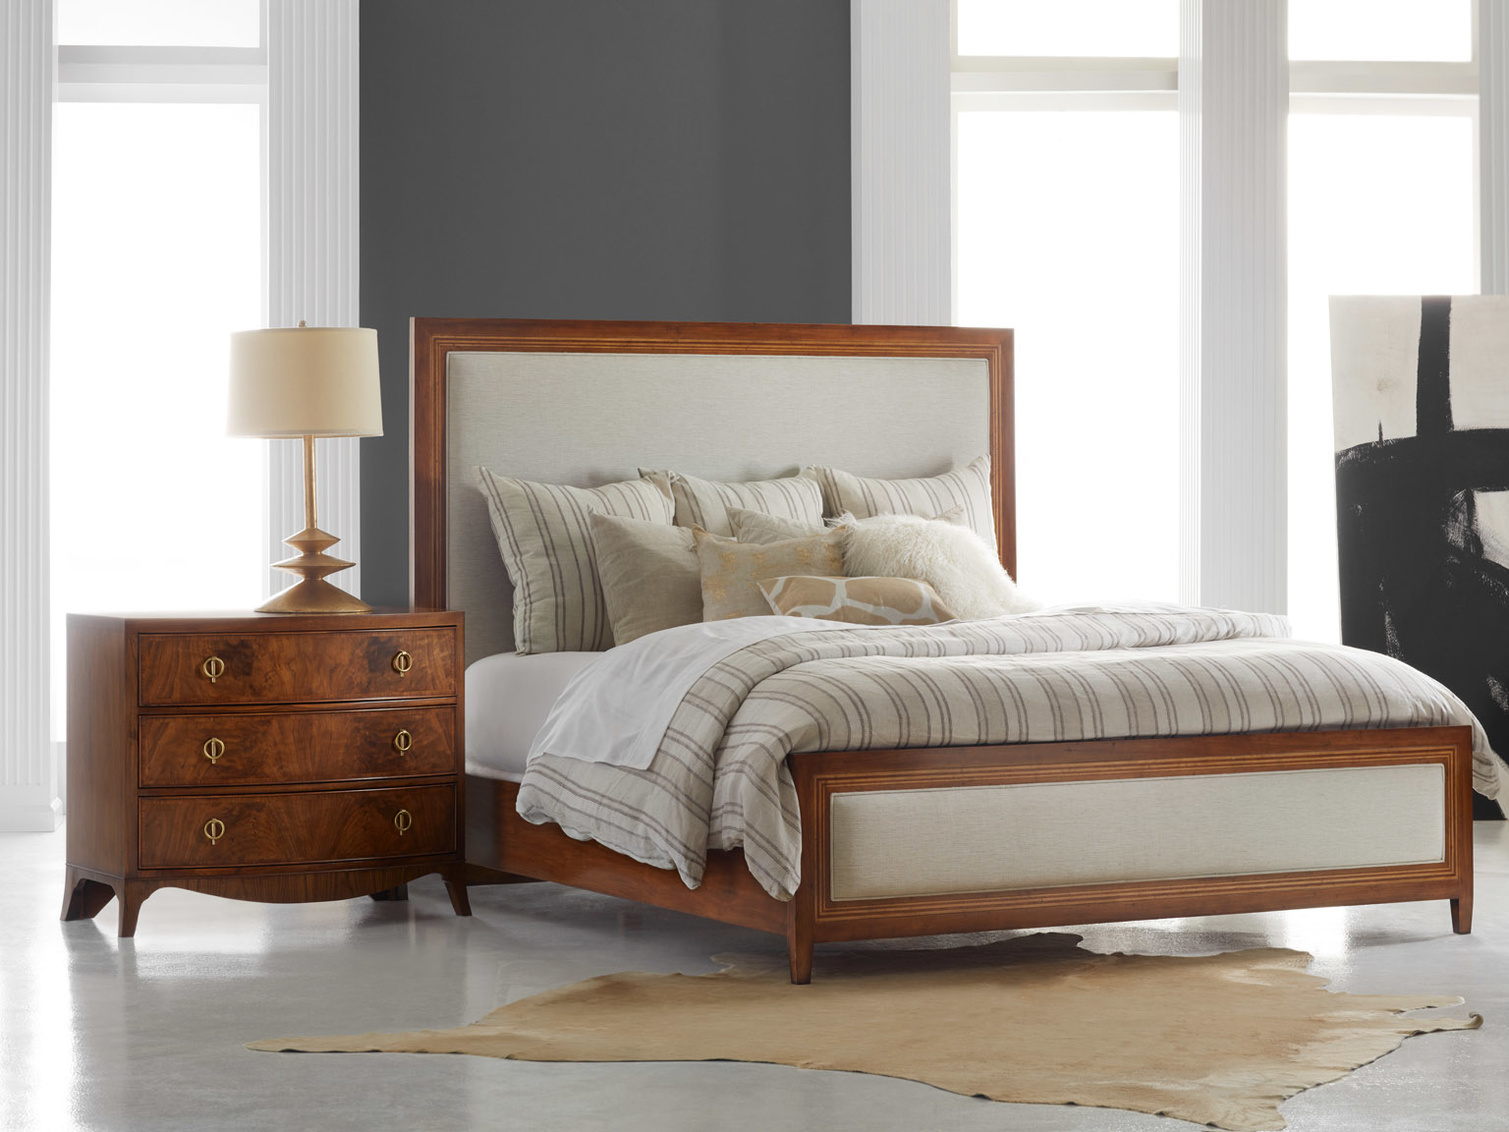 Milan Bed Queen MH924F01 Q MH924F01 K